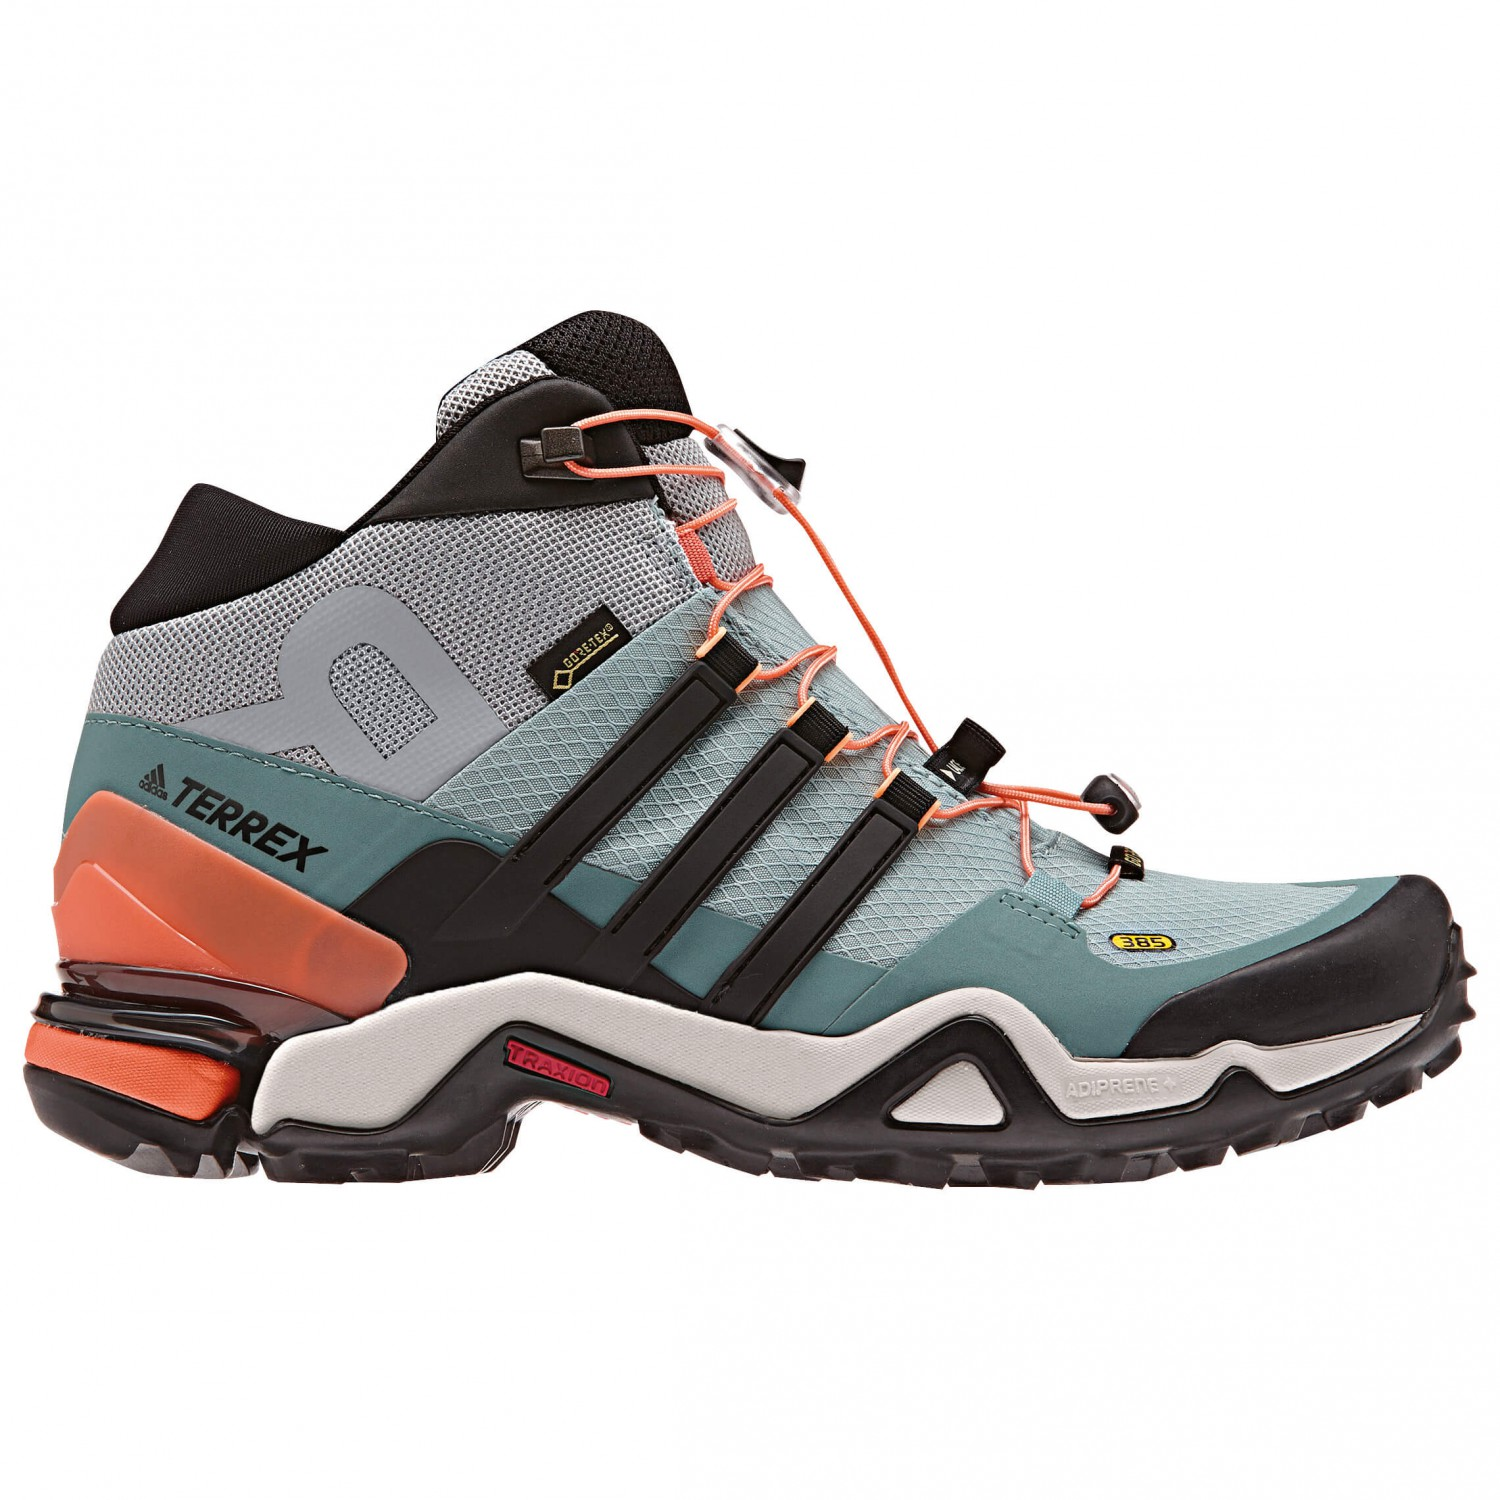 adidas terrex fast r mid gtx walking boots women 39 s. Black Bedroom Furniture Sets. Home Design Ideas